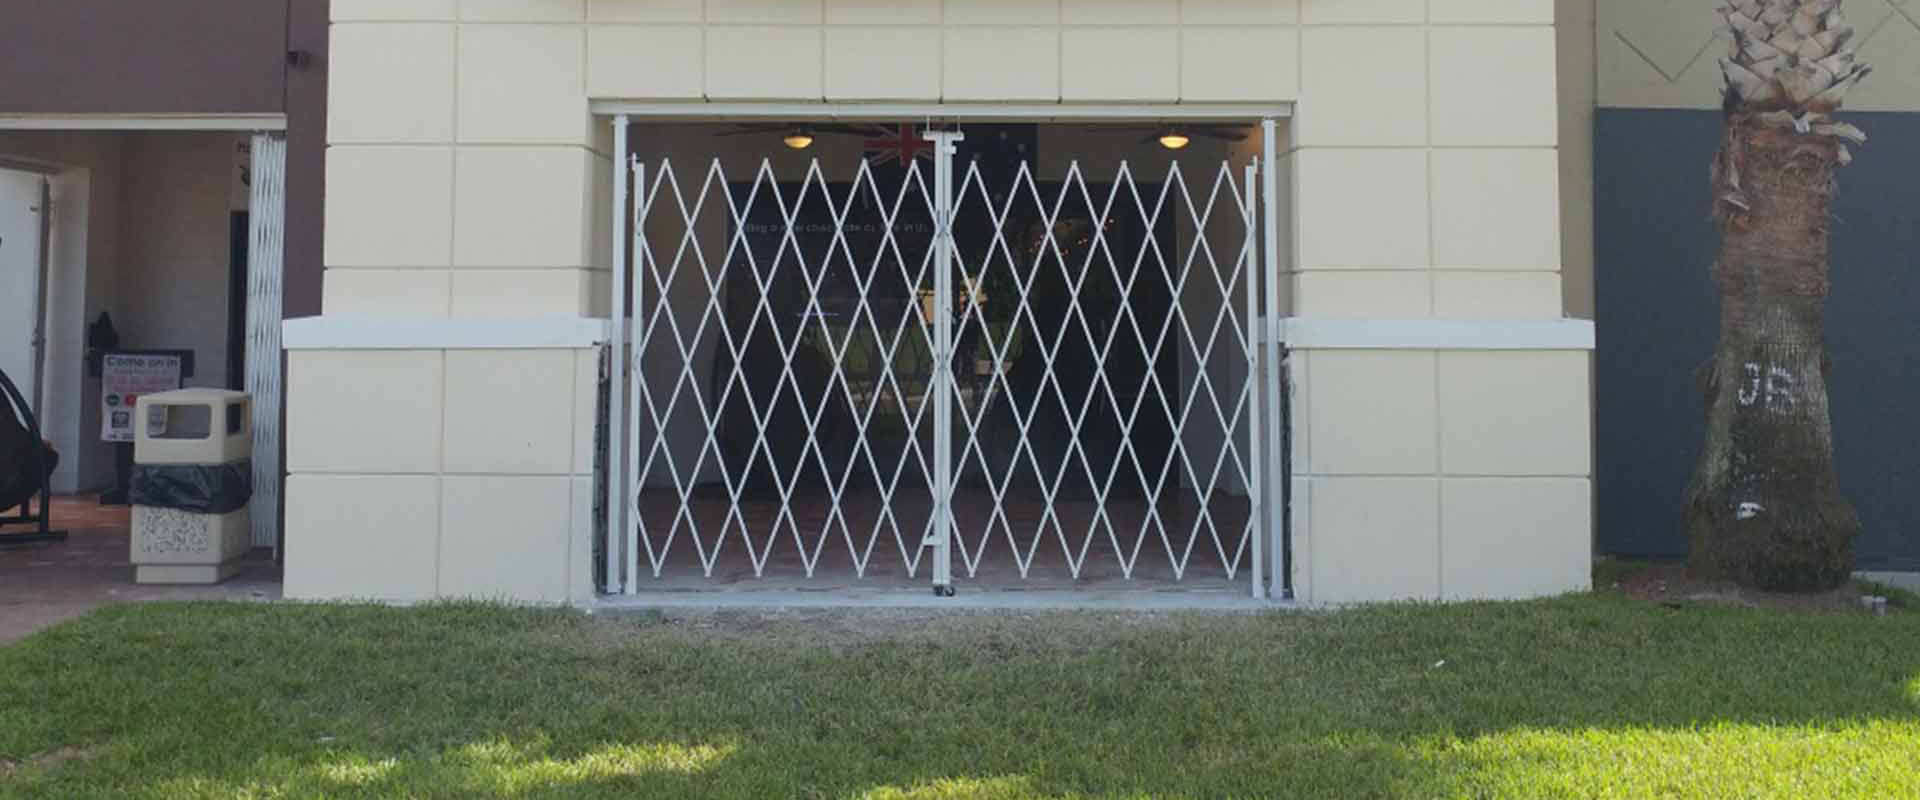 Steel Folding Gates for Any Entrance